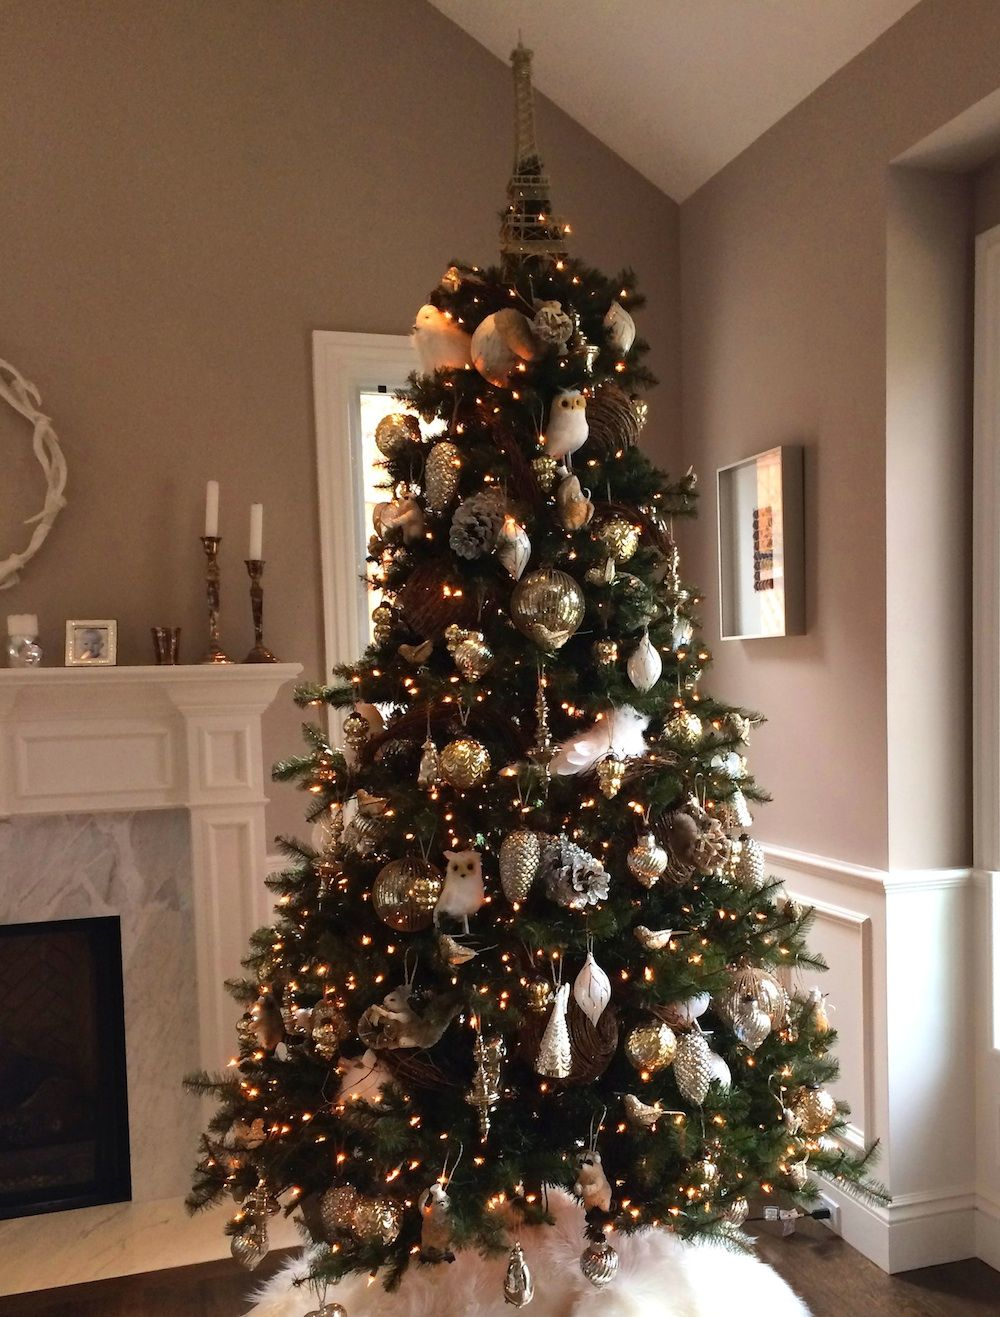 A Pottery Barn Christmas Tree With All the Trimmings | Christmas ...